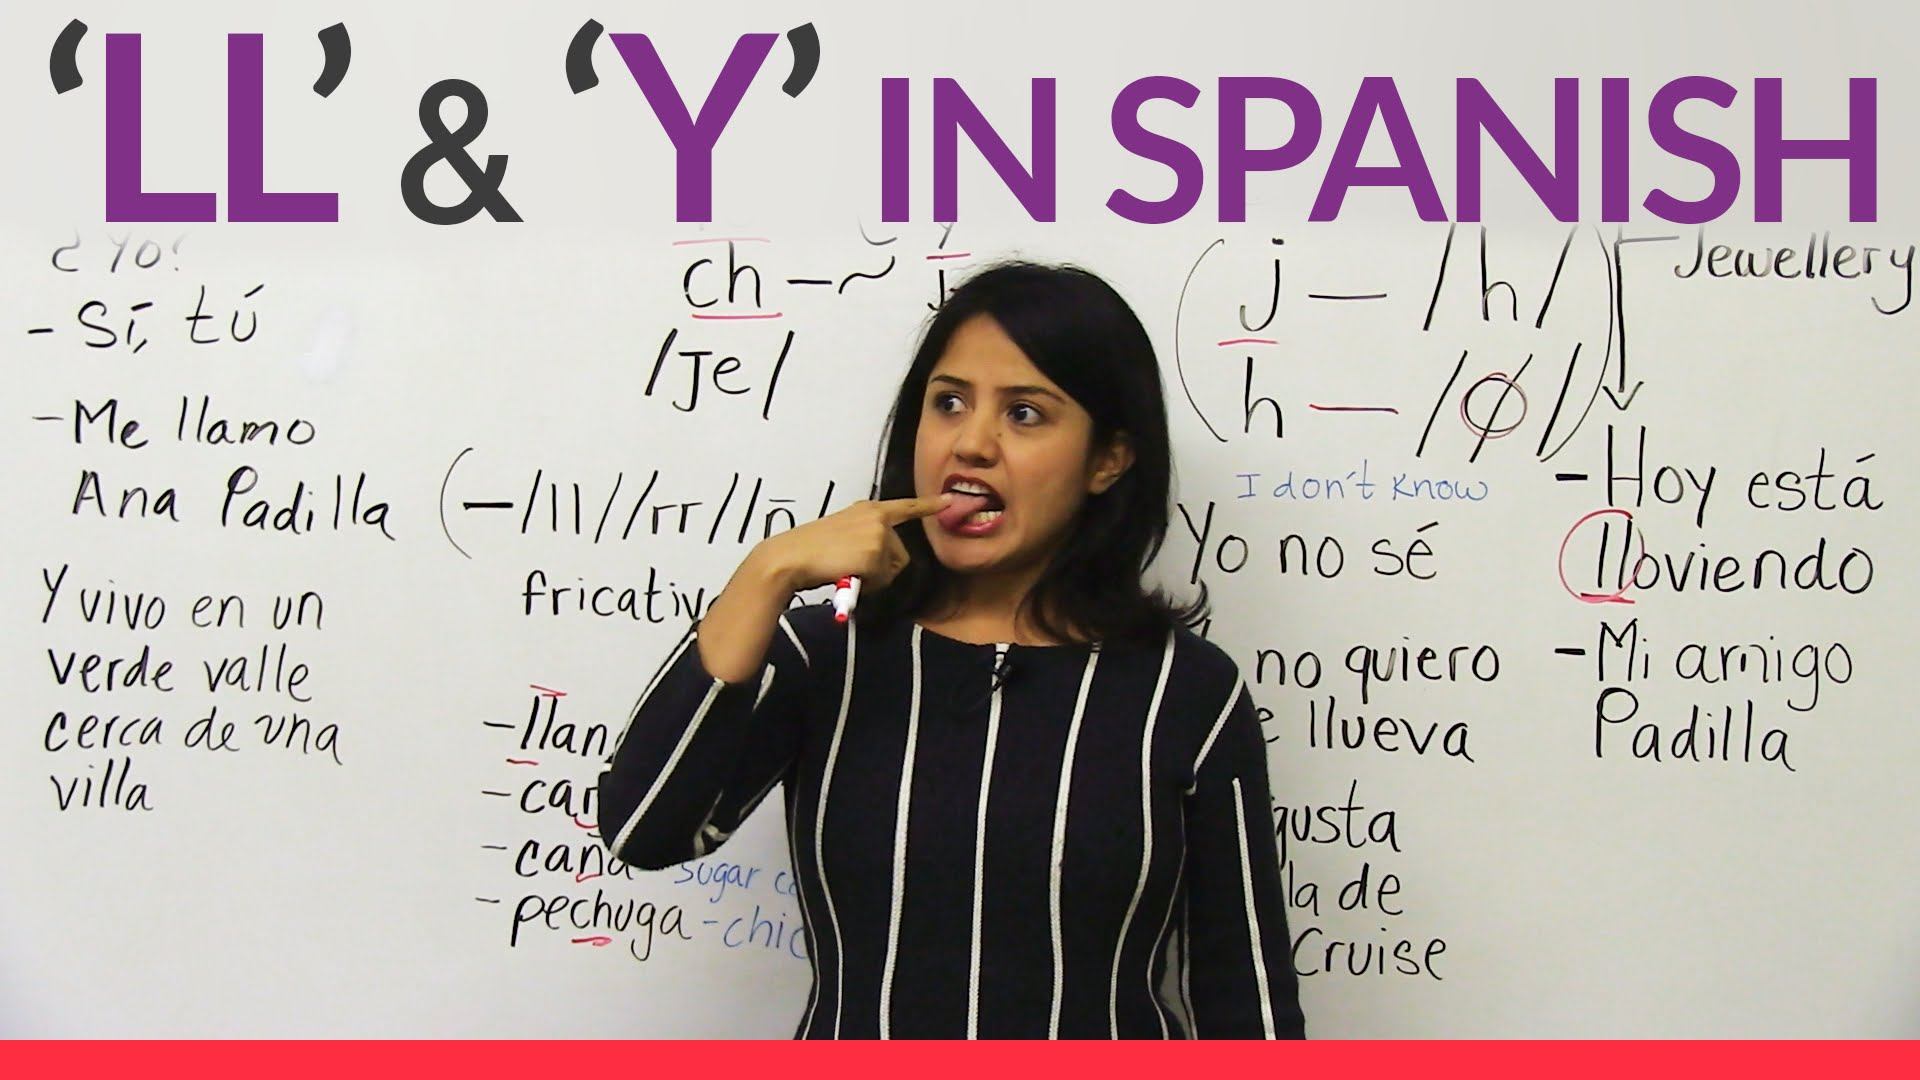 The letters LL and Y in Spanish | diy.fyi